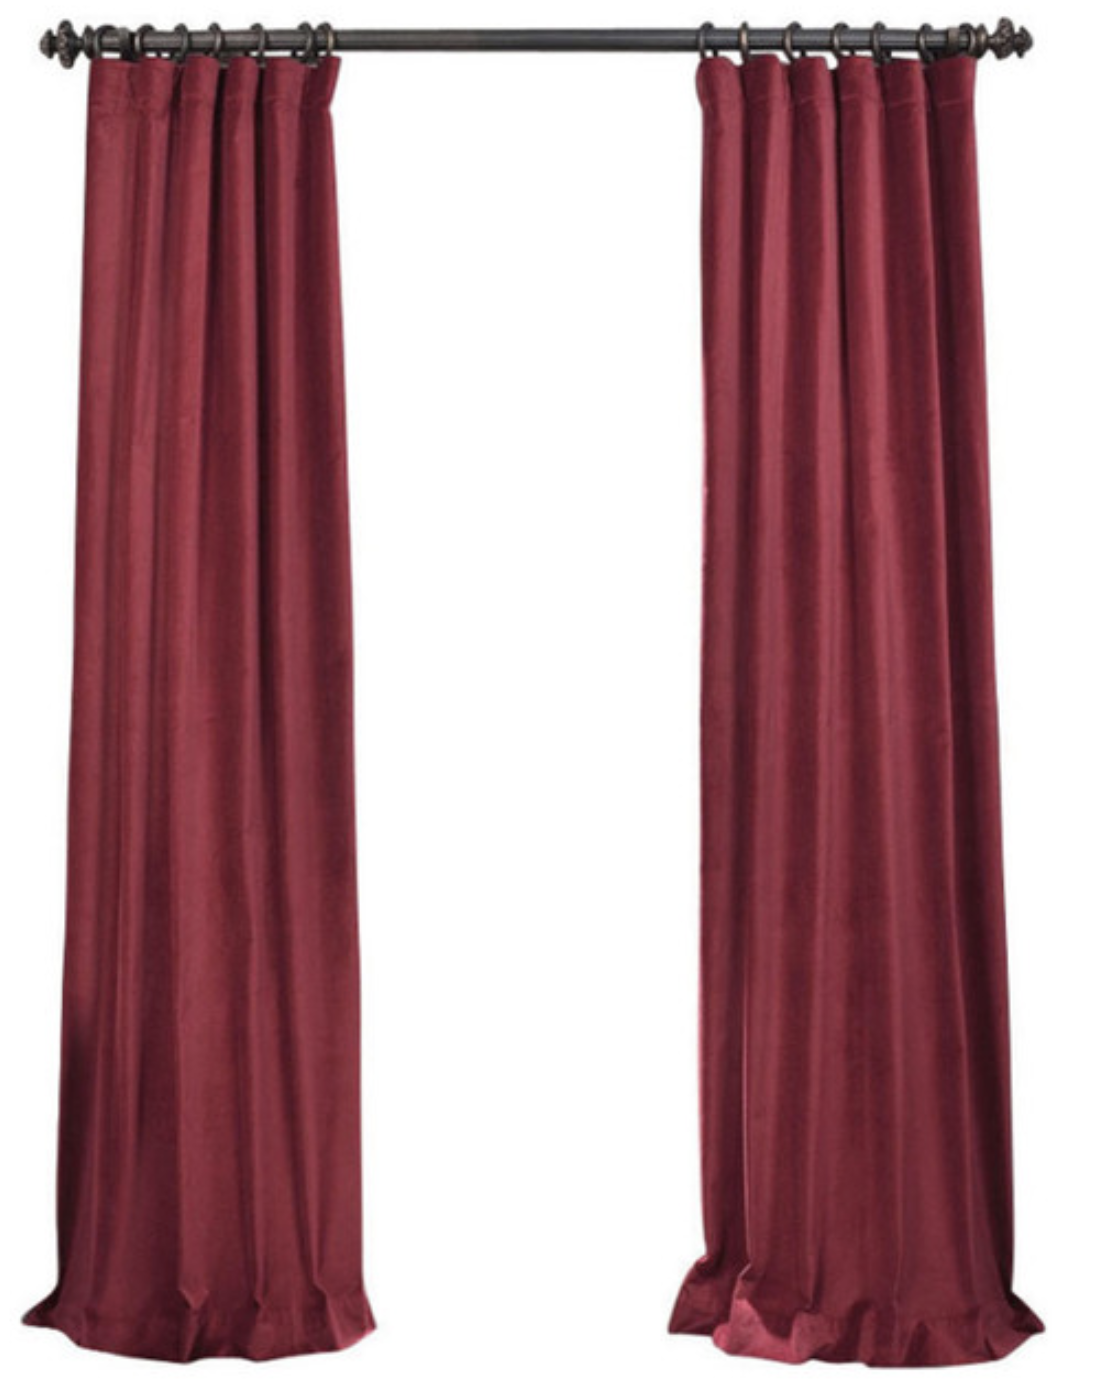 luxury-velvet-curtain-panels-red